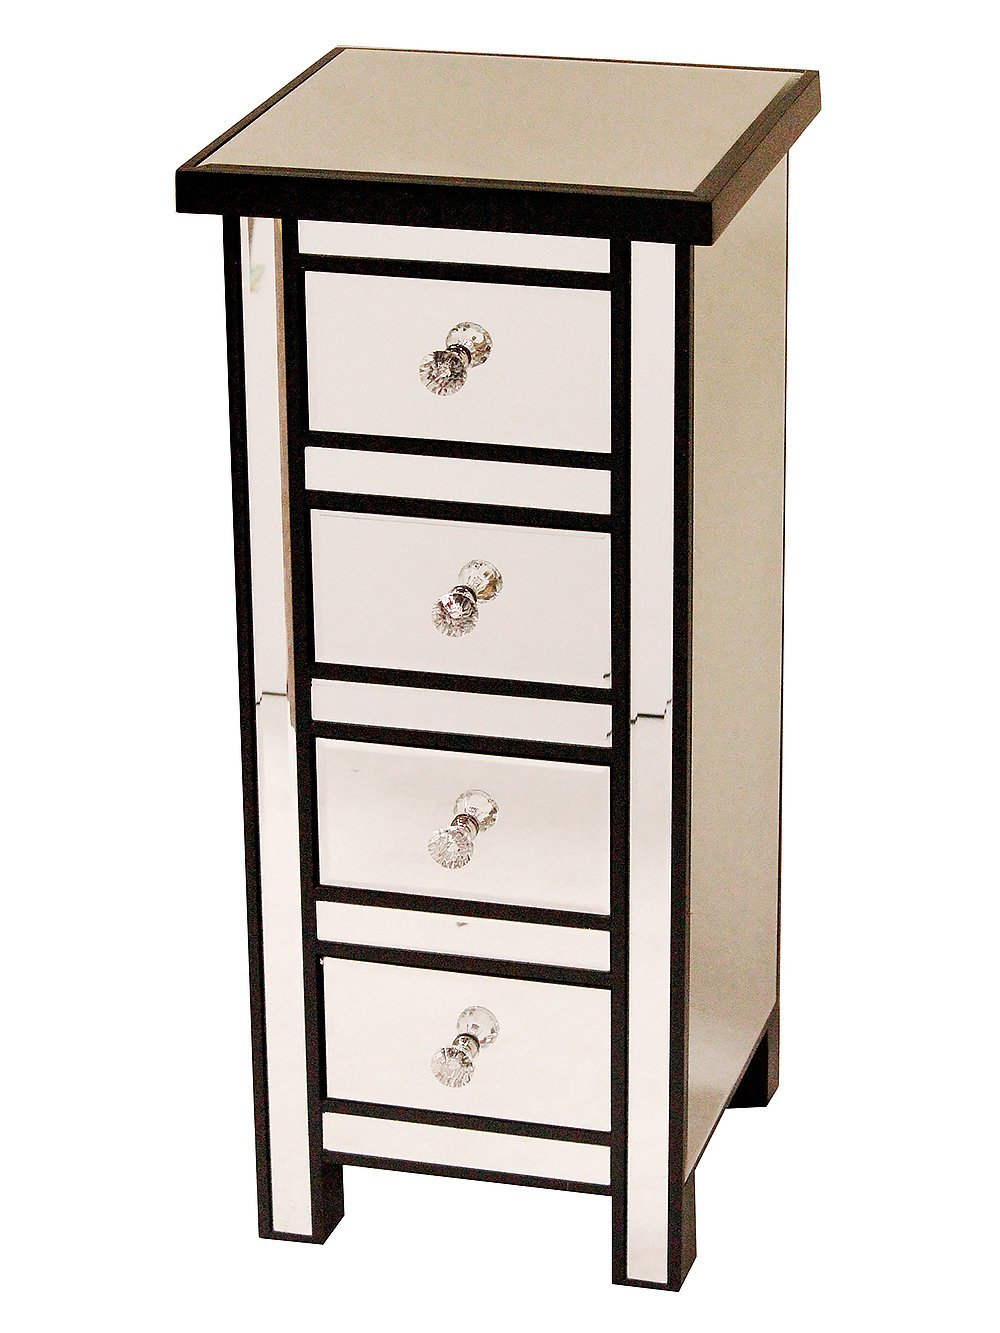 Heather Ann Creations Handcrafted Wood with Beveled Mirror Finish 4 Drawer Storage Chest Console, 31.5''